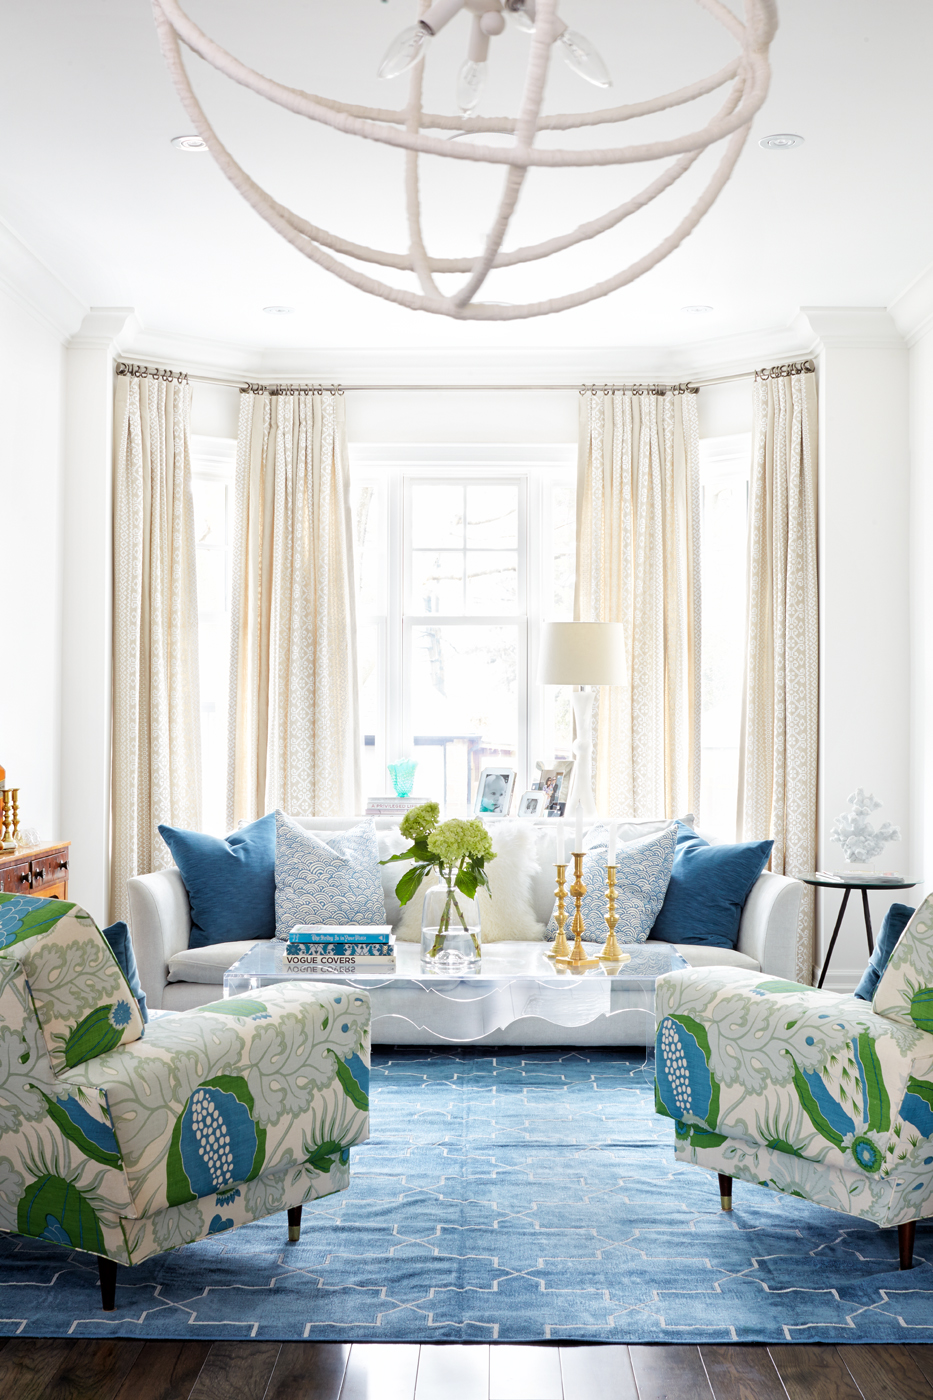 Robyn Madeline Interiors Is A Full Service Interior Design Firm Founded By  Robyn Rider In 2013, Based In Toronto, Canada.